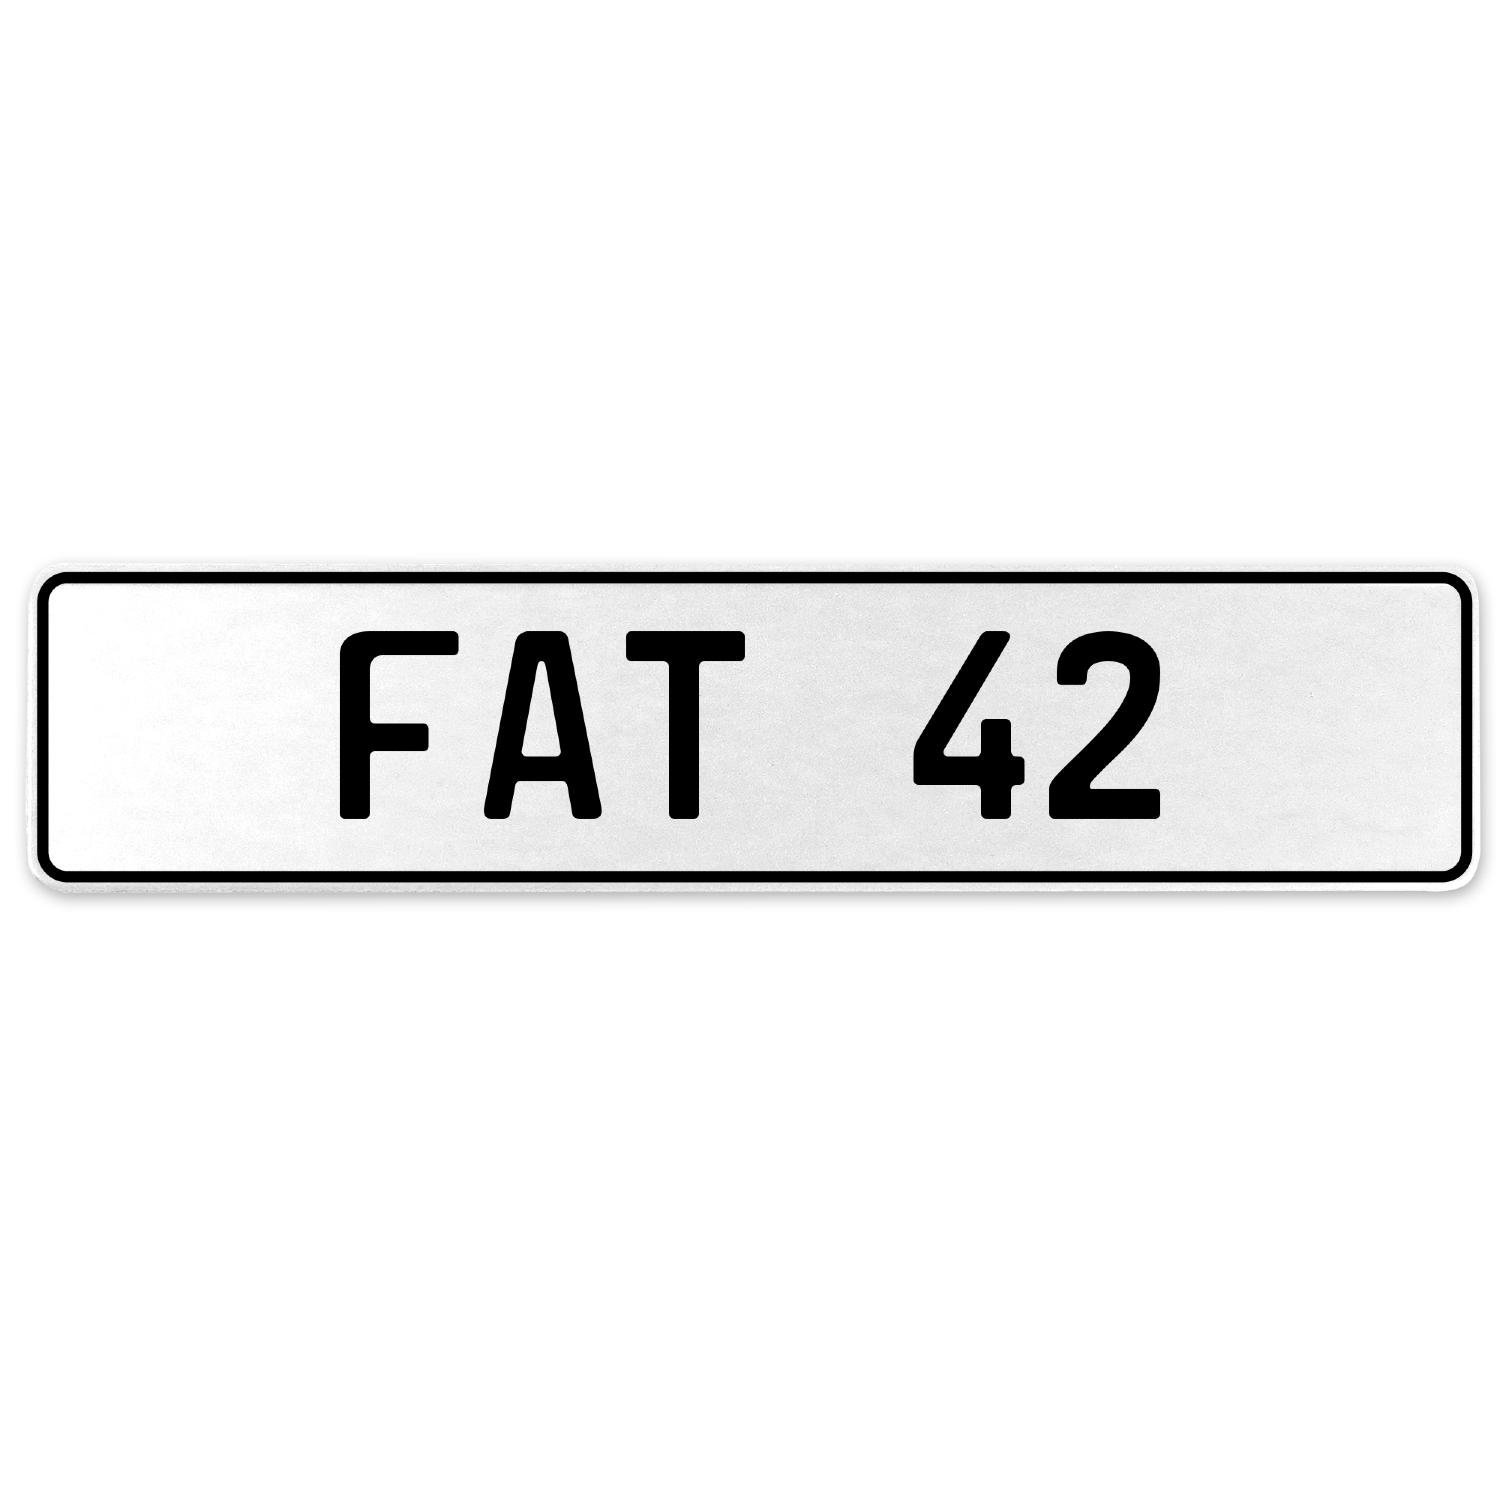 Vintage Parts 554540 Fat 42 White Stamped Aluminum European License Plate